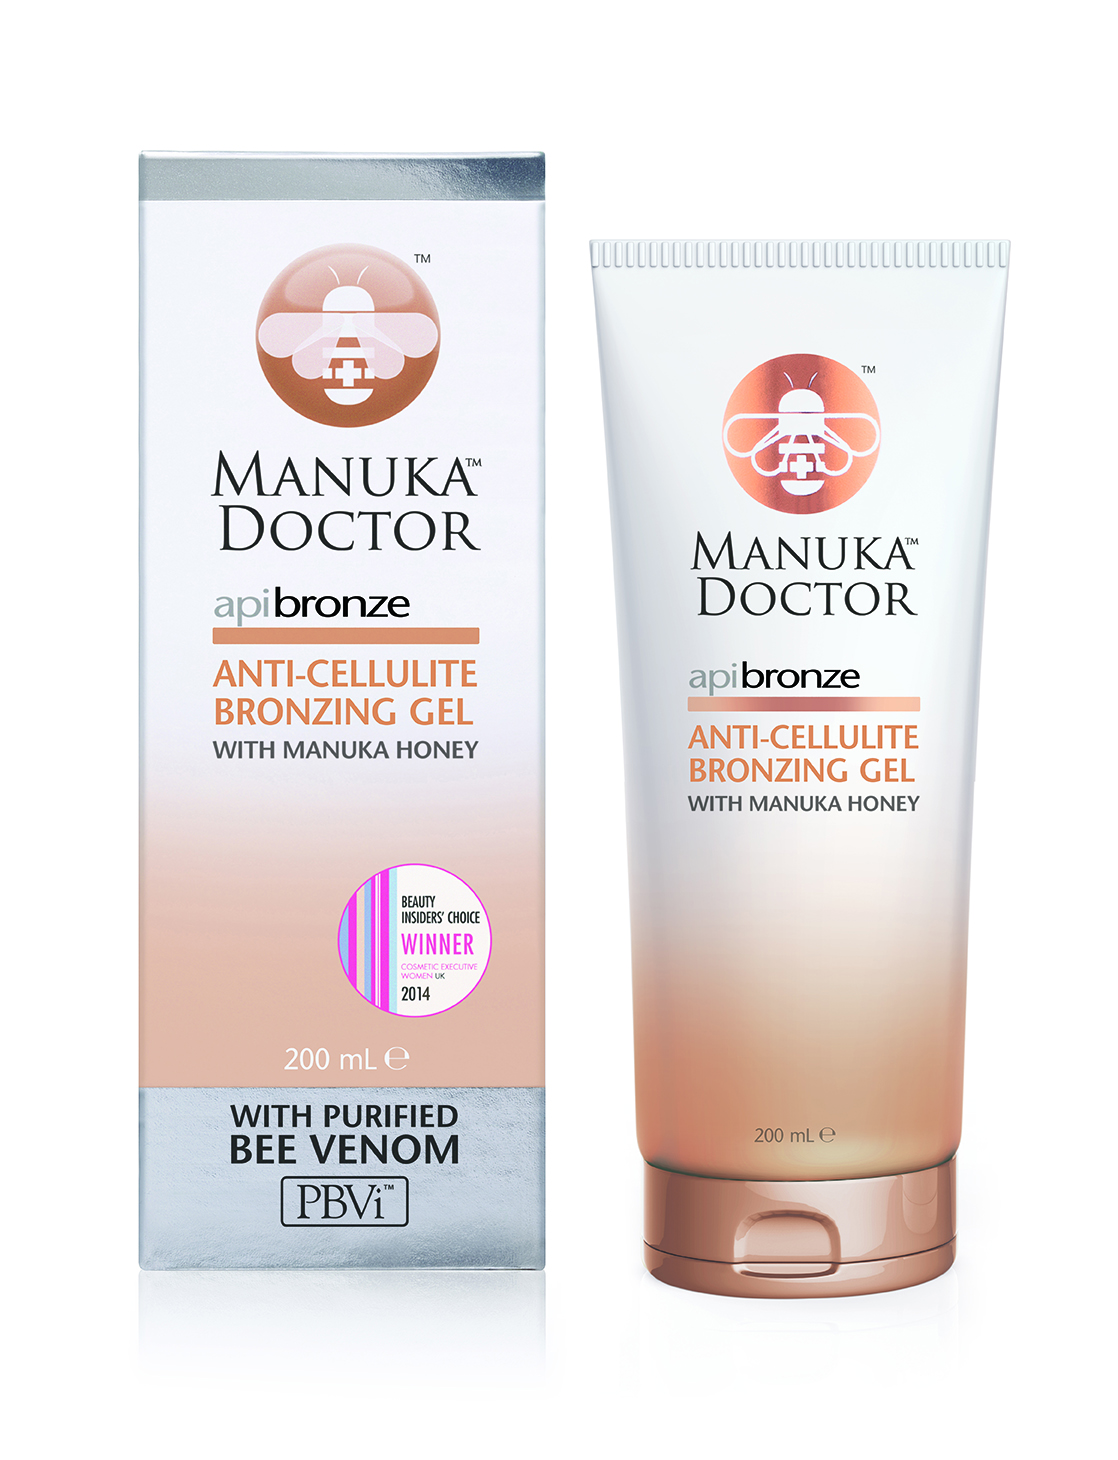 Manuka Doctor ApiBronze Anti-Cellulite Bronzing Gel 200ml RRP$34.95 (2)